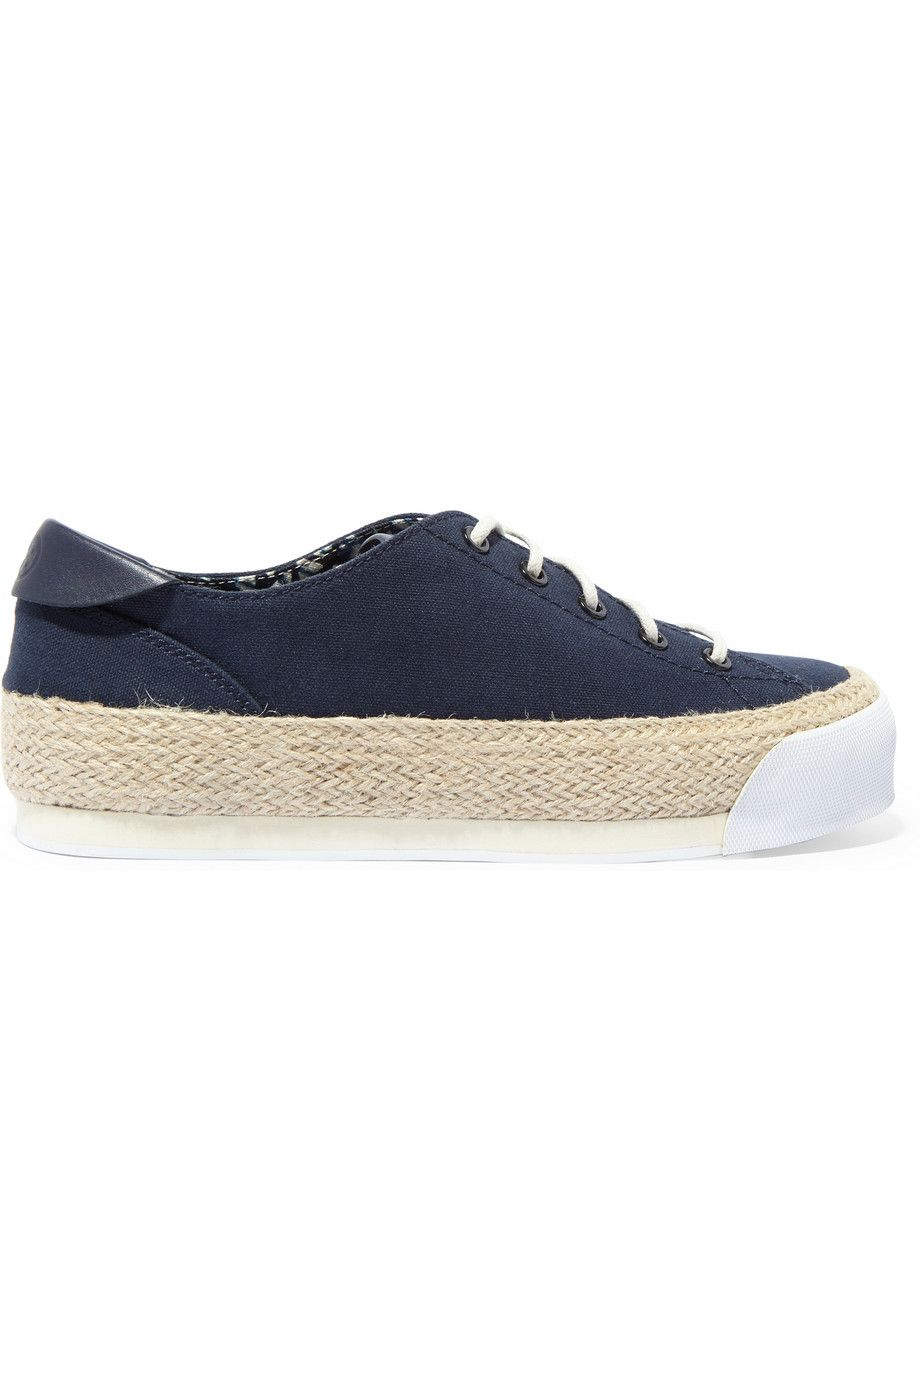 TORY BURCH Canvas Platform Espadrille Sneakers. #toryburch #shoes #sneakers